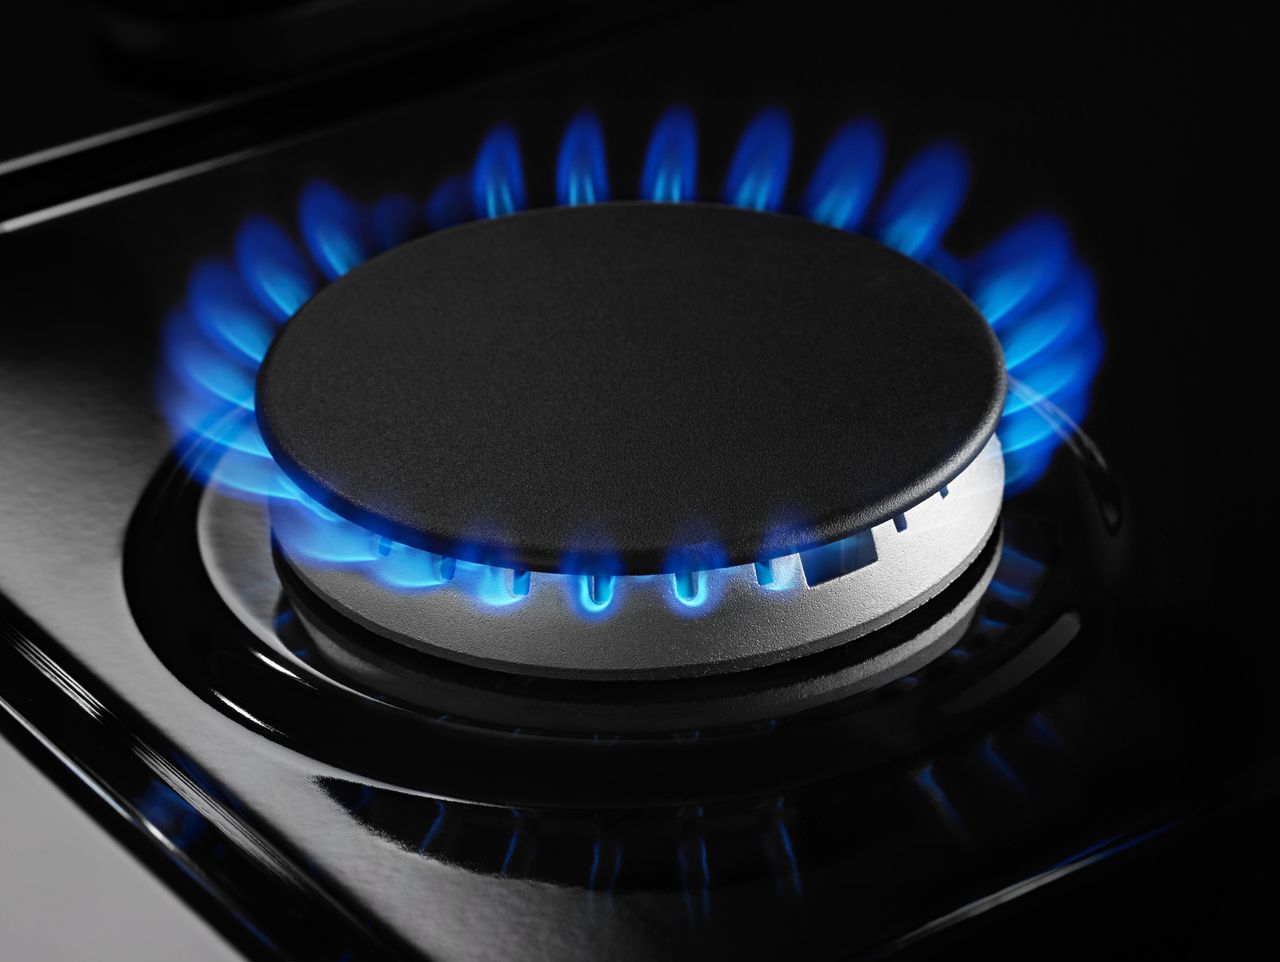 """Featured image for """"How to Replace the Spark Ignition Switch on a Maytag Gas Stove"""""""